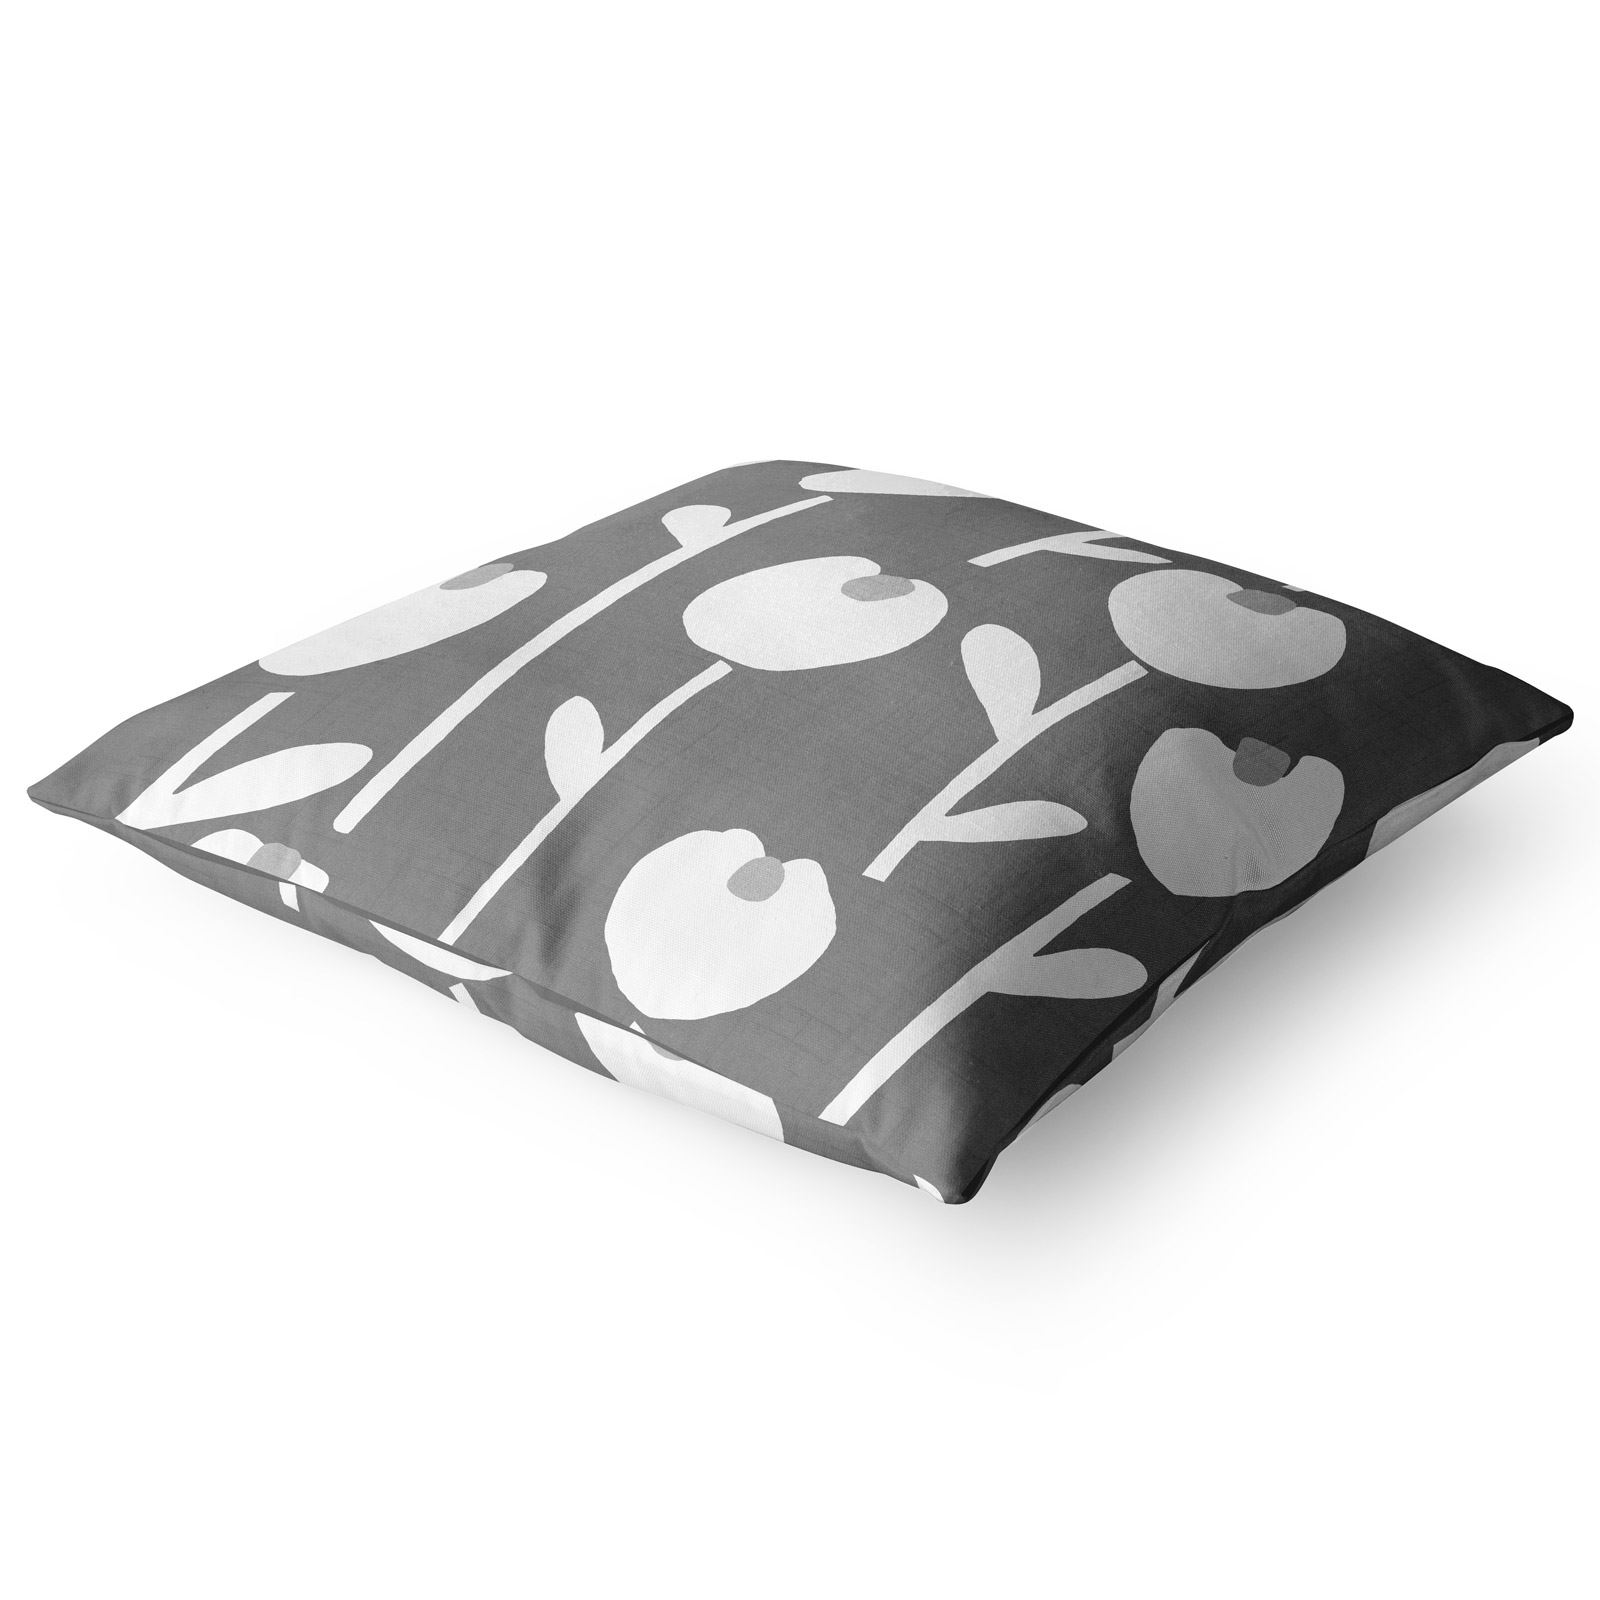 Grey-Ochre-Mustard-Cushion-Cover-Collection-17-034-18-034-Covers-Filled-Cushions thumbnail 3